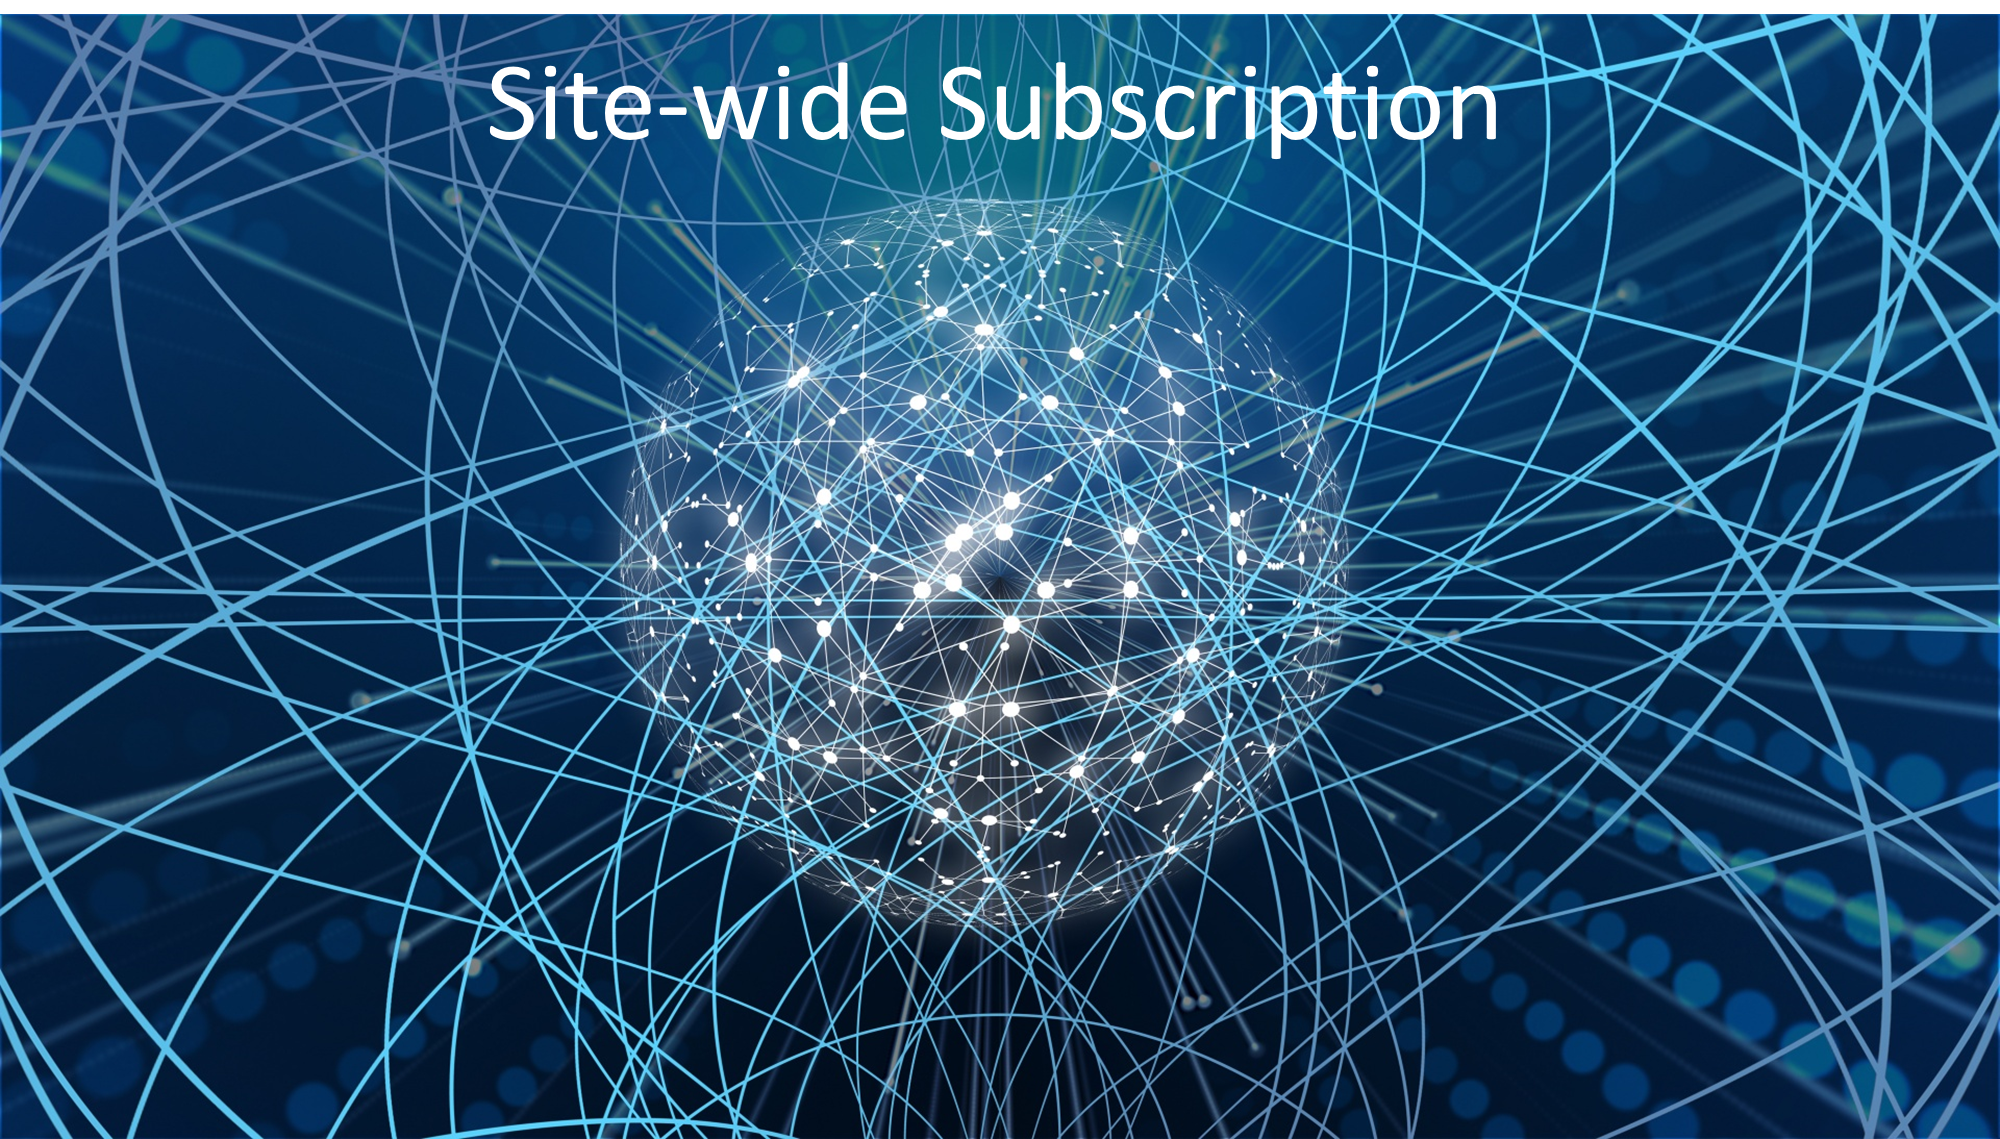 Site-wide Subscription